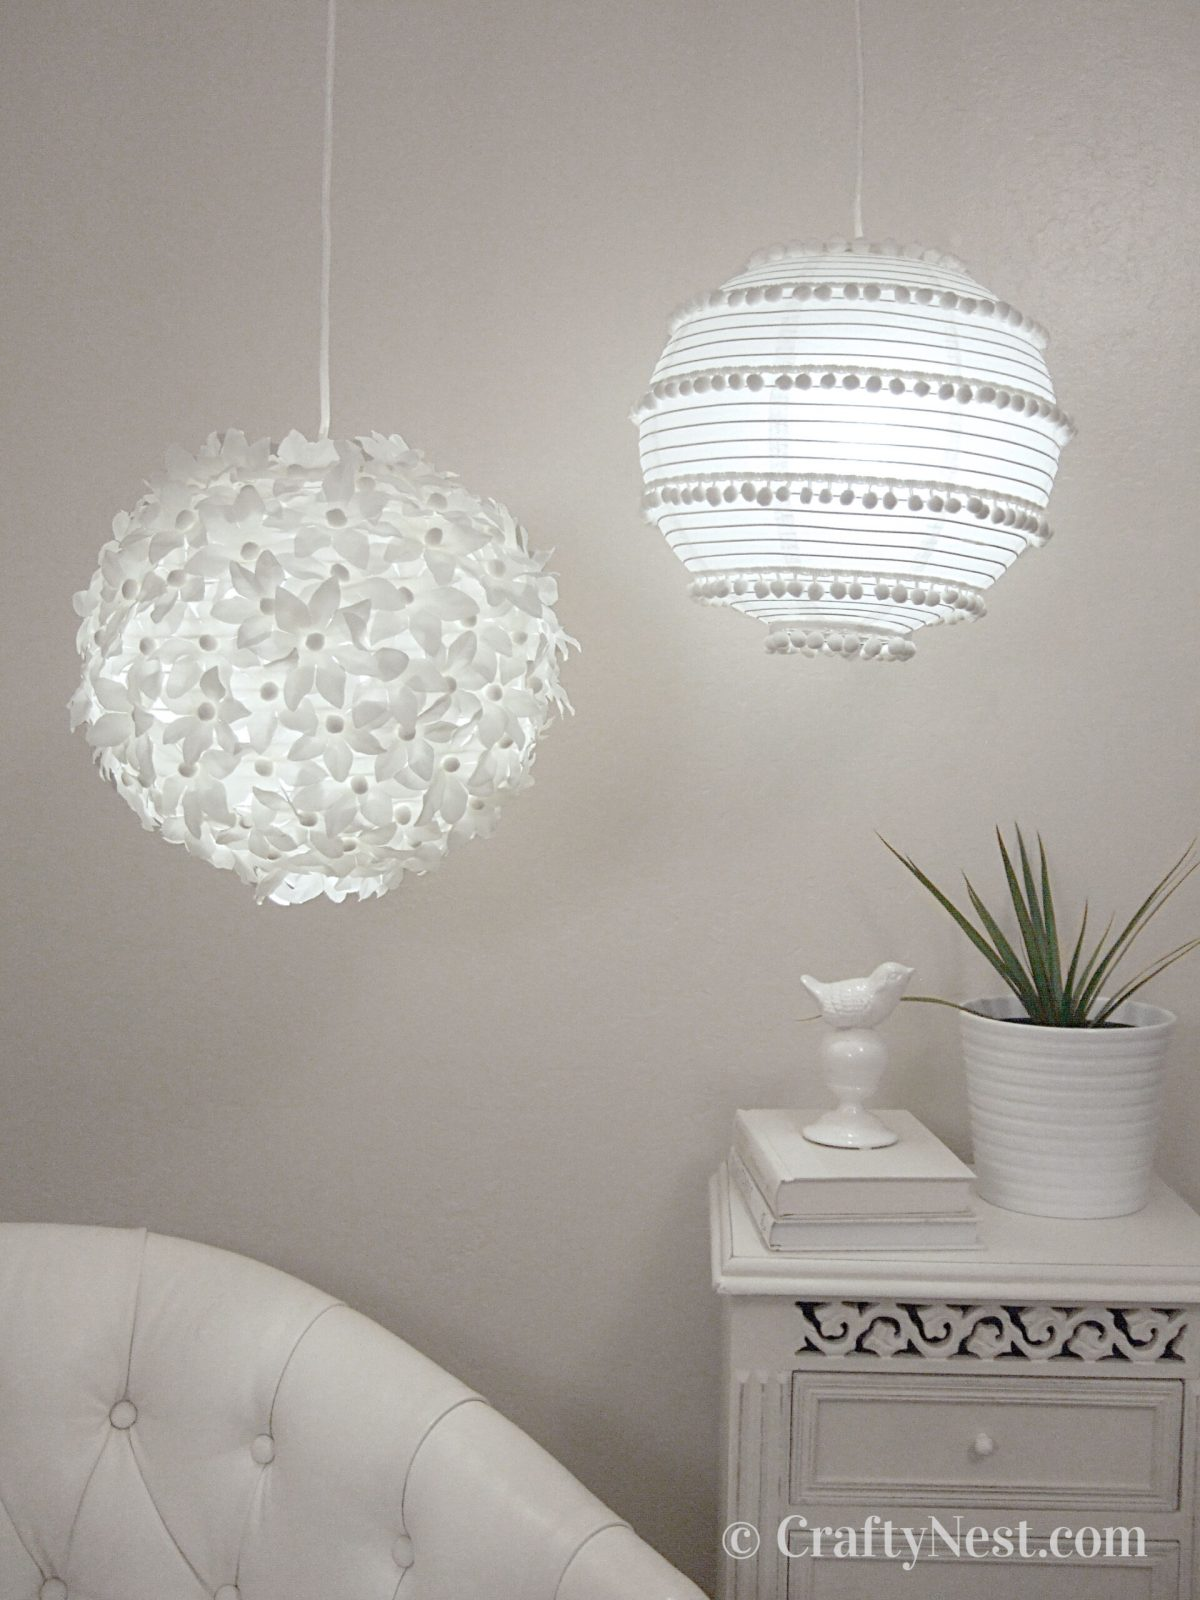 Two paper lanterns with flowers and pom poms, photo